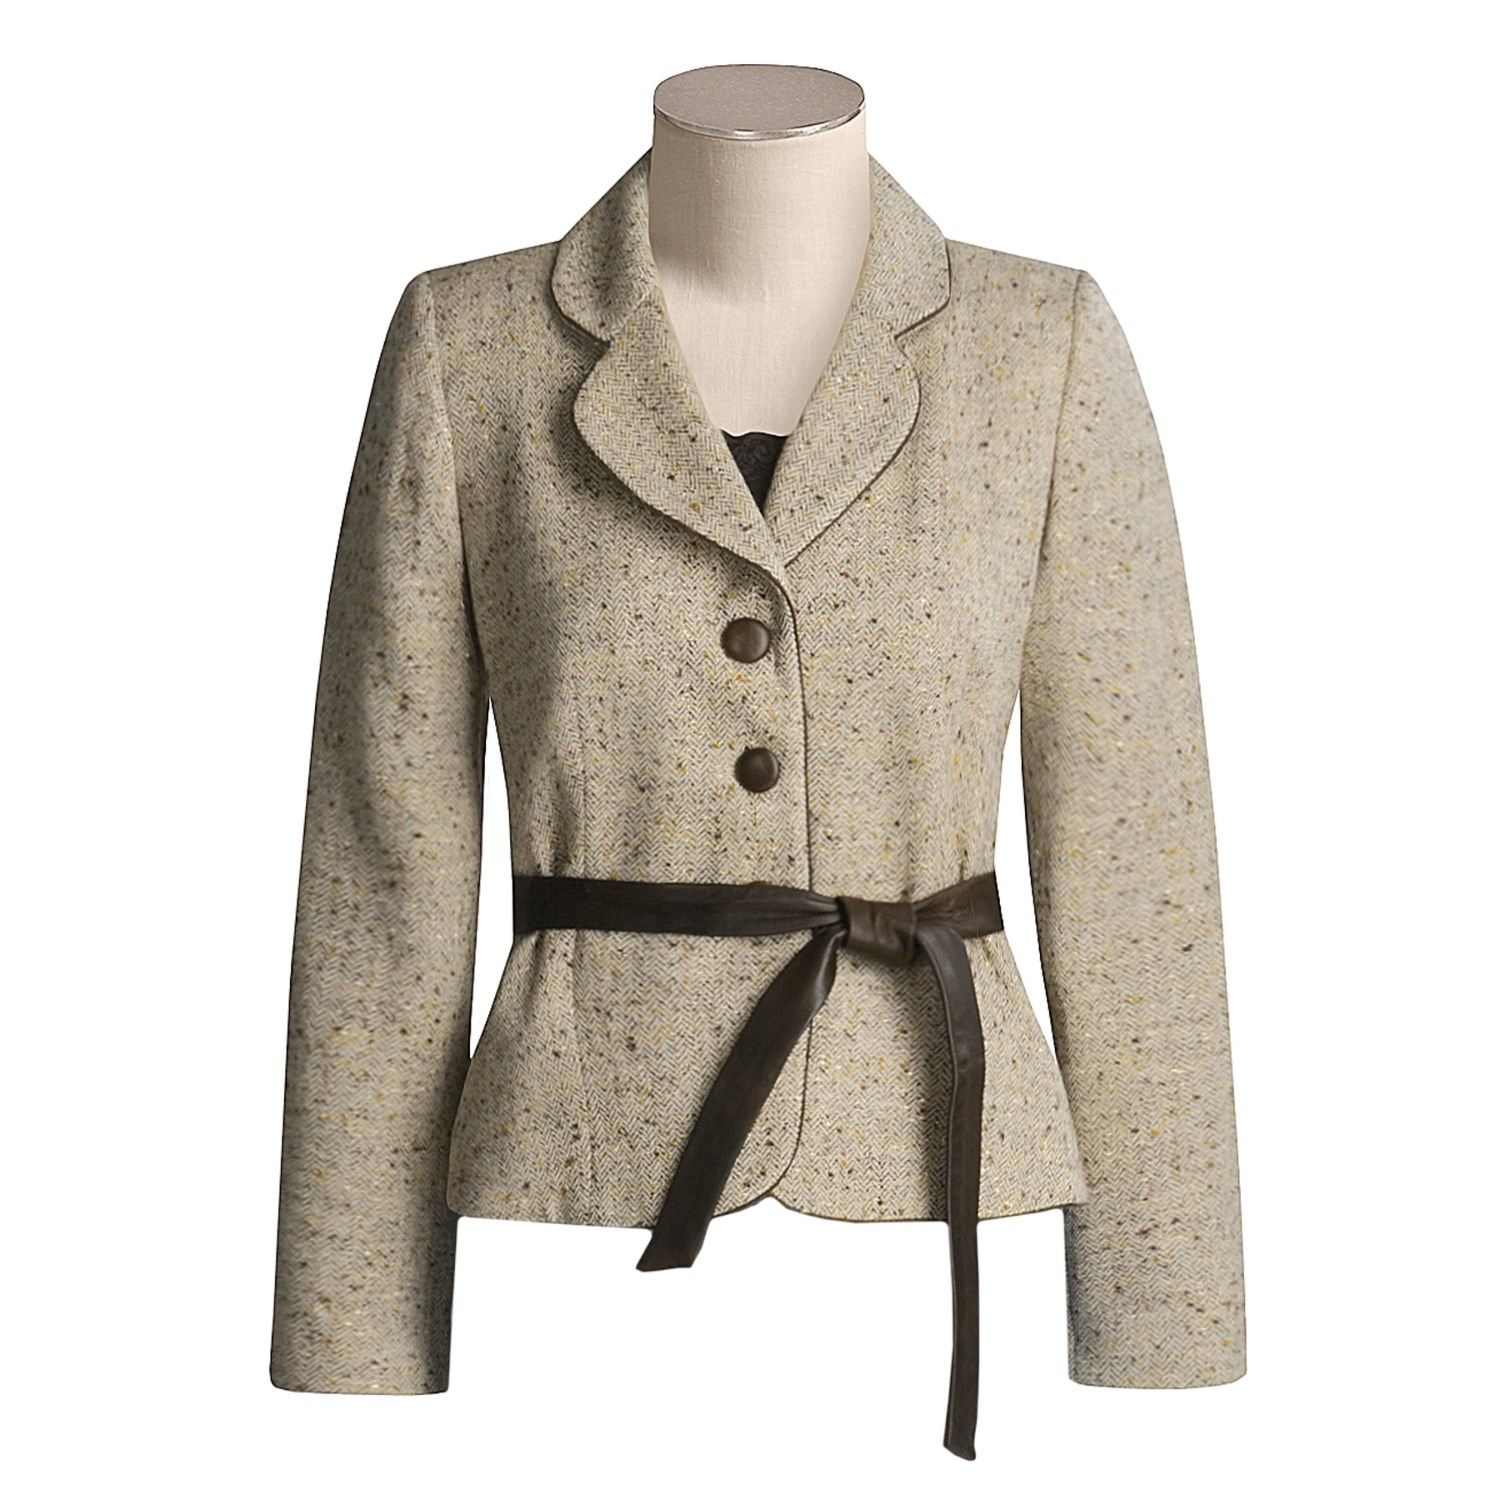 z by tweed jacket with leather belt for